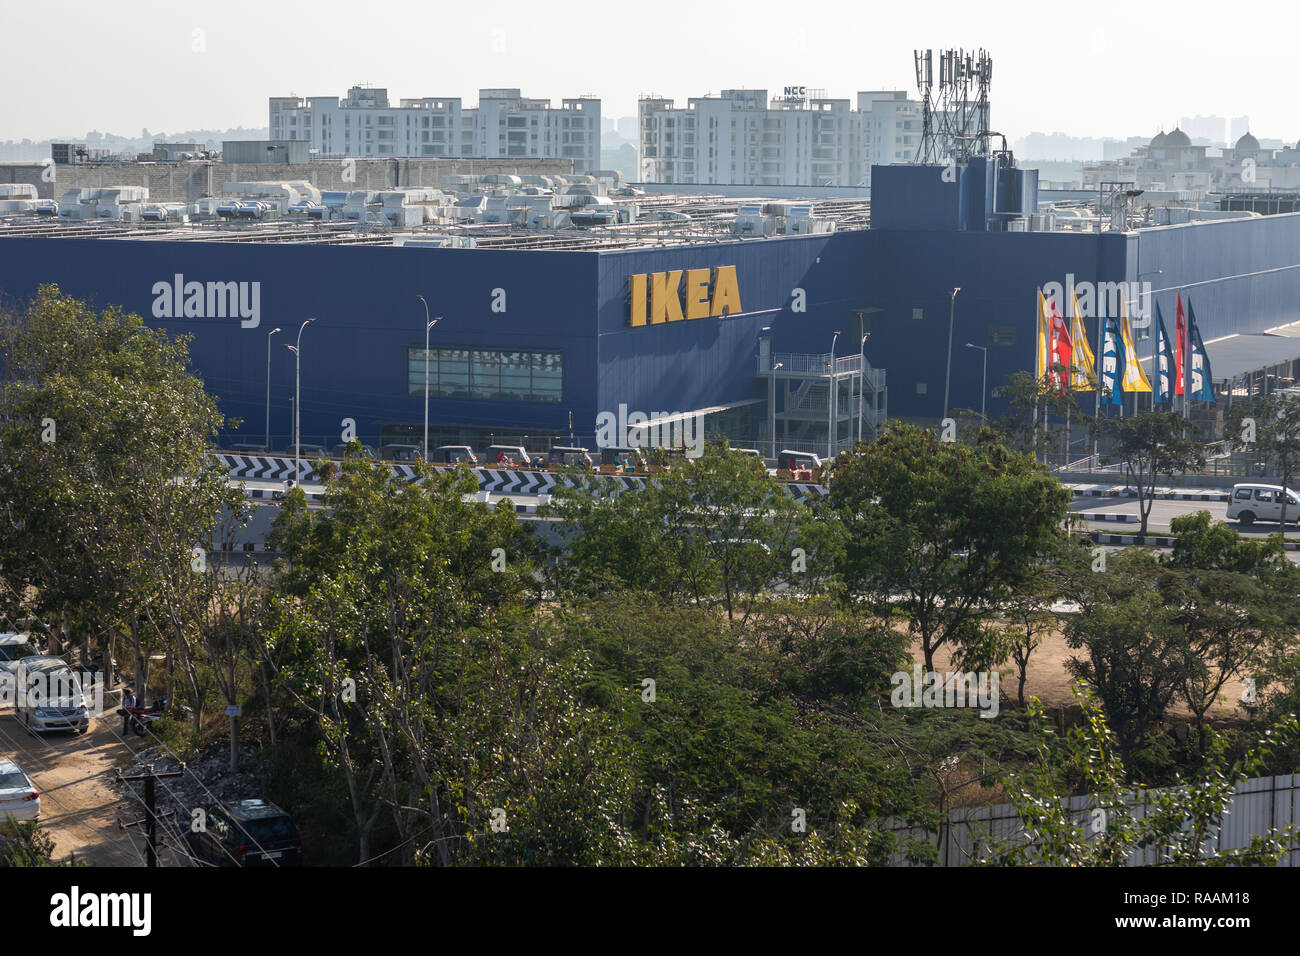 HYDERABAD, INDIA - January 02,2018. High angle view of Ikea,India.Swedish furniture giant IKEA opened it's first store in India on August 09,2018 in t - Stock Image